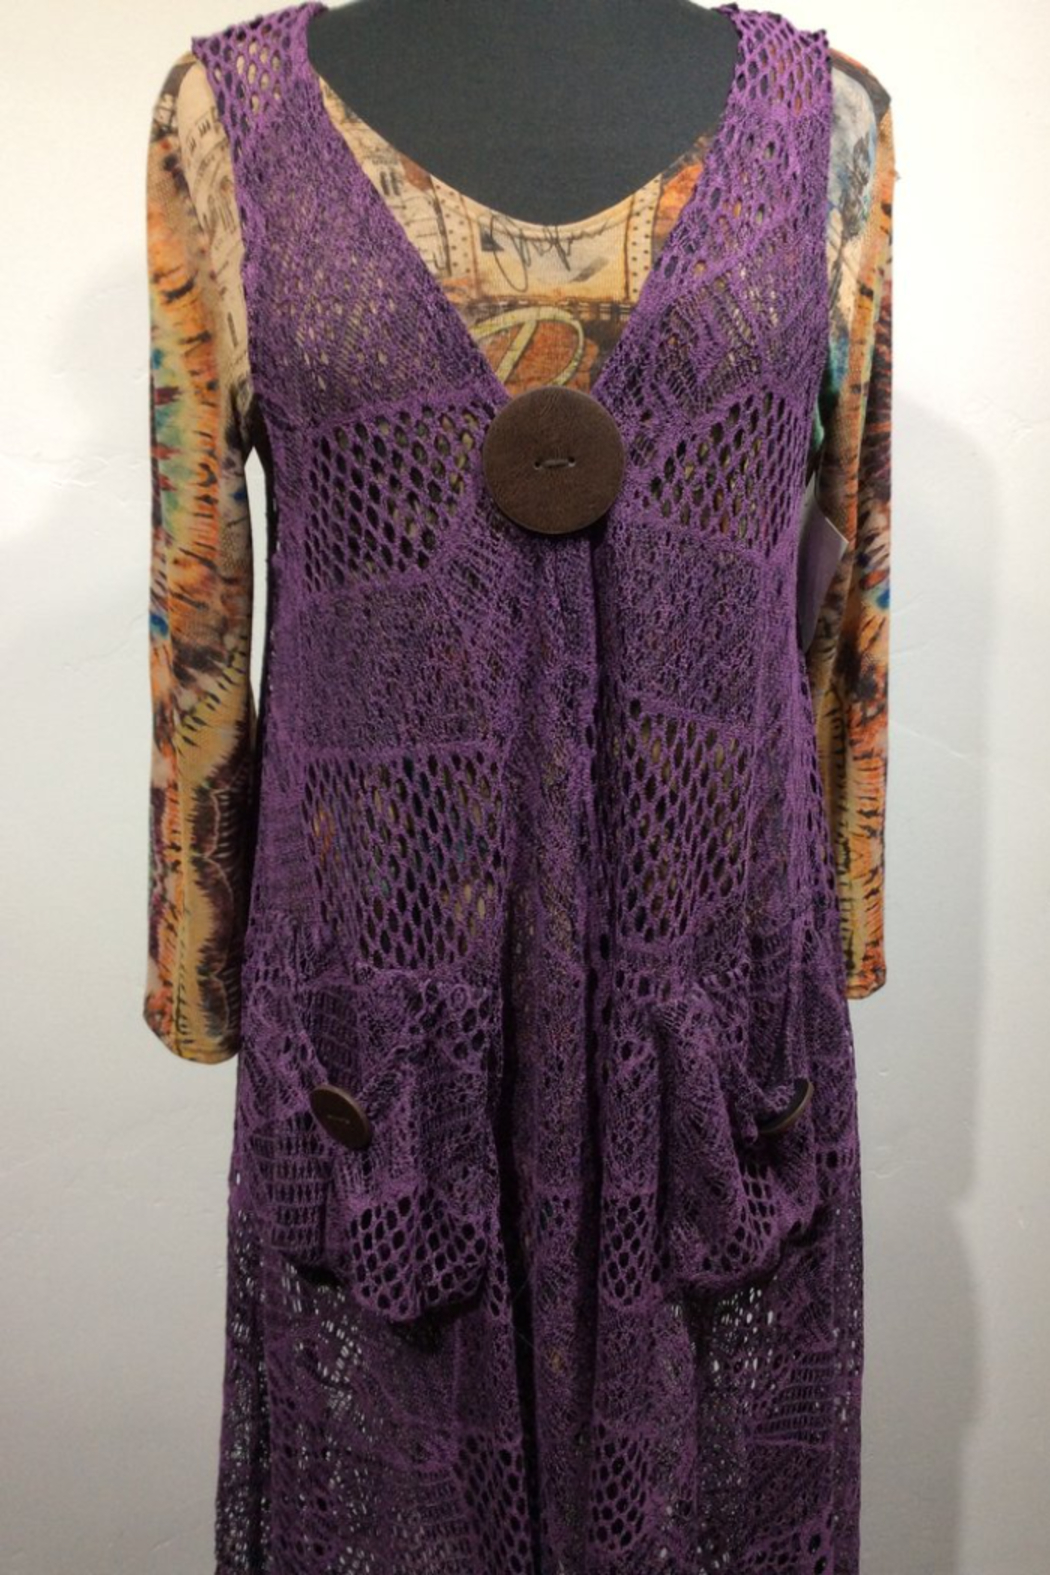 Grace K Dress- SJ9864-1 Crochet Dress with Pockets and Large Wooden Button Detail - Main Image